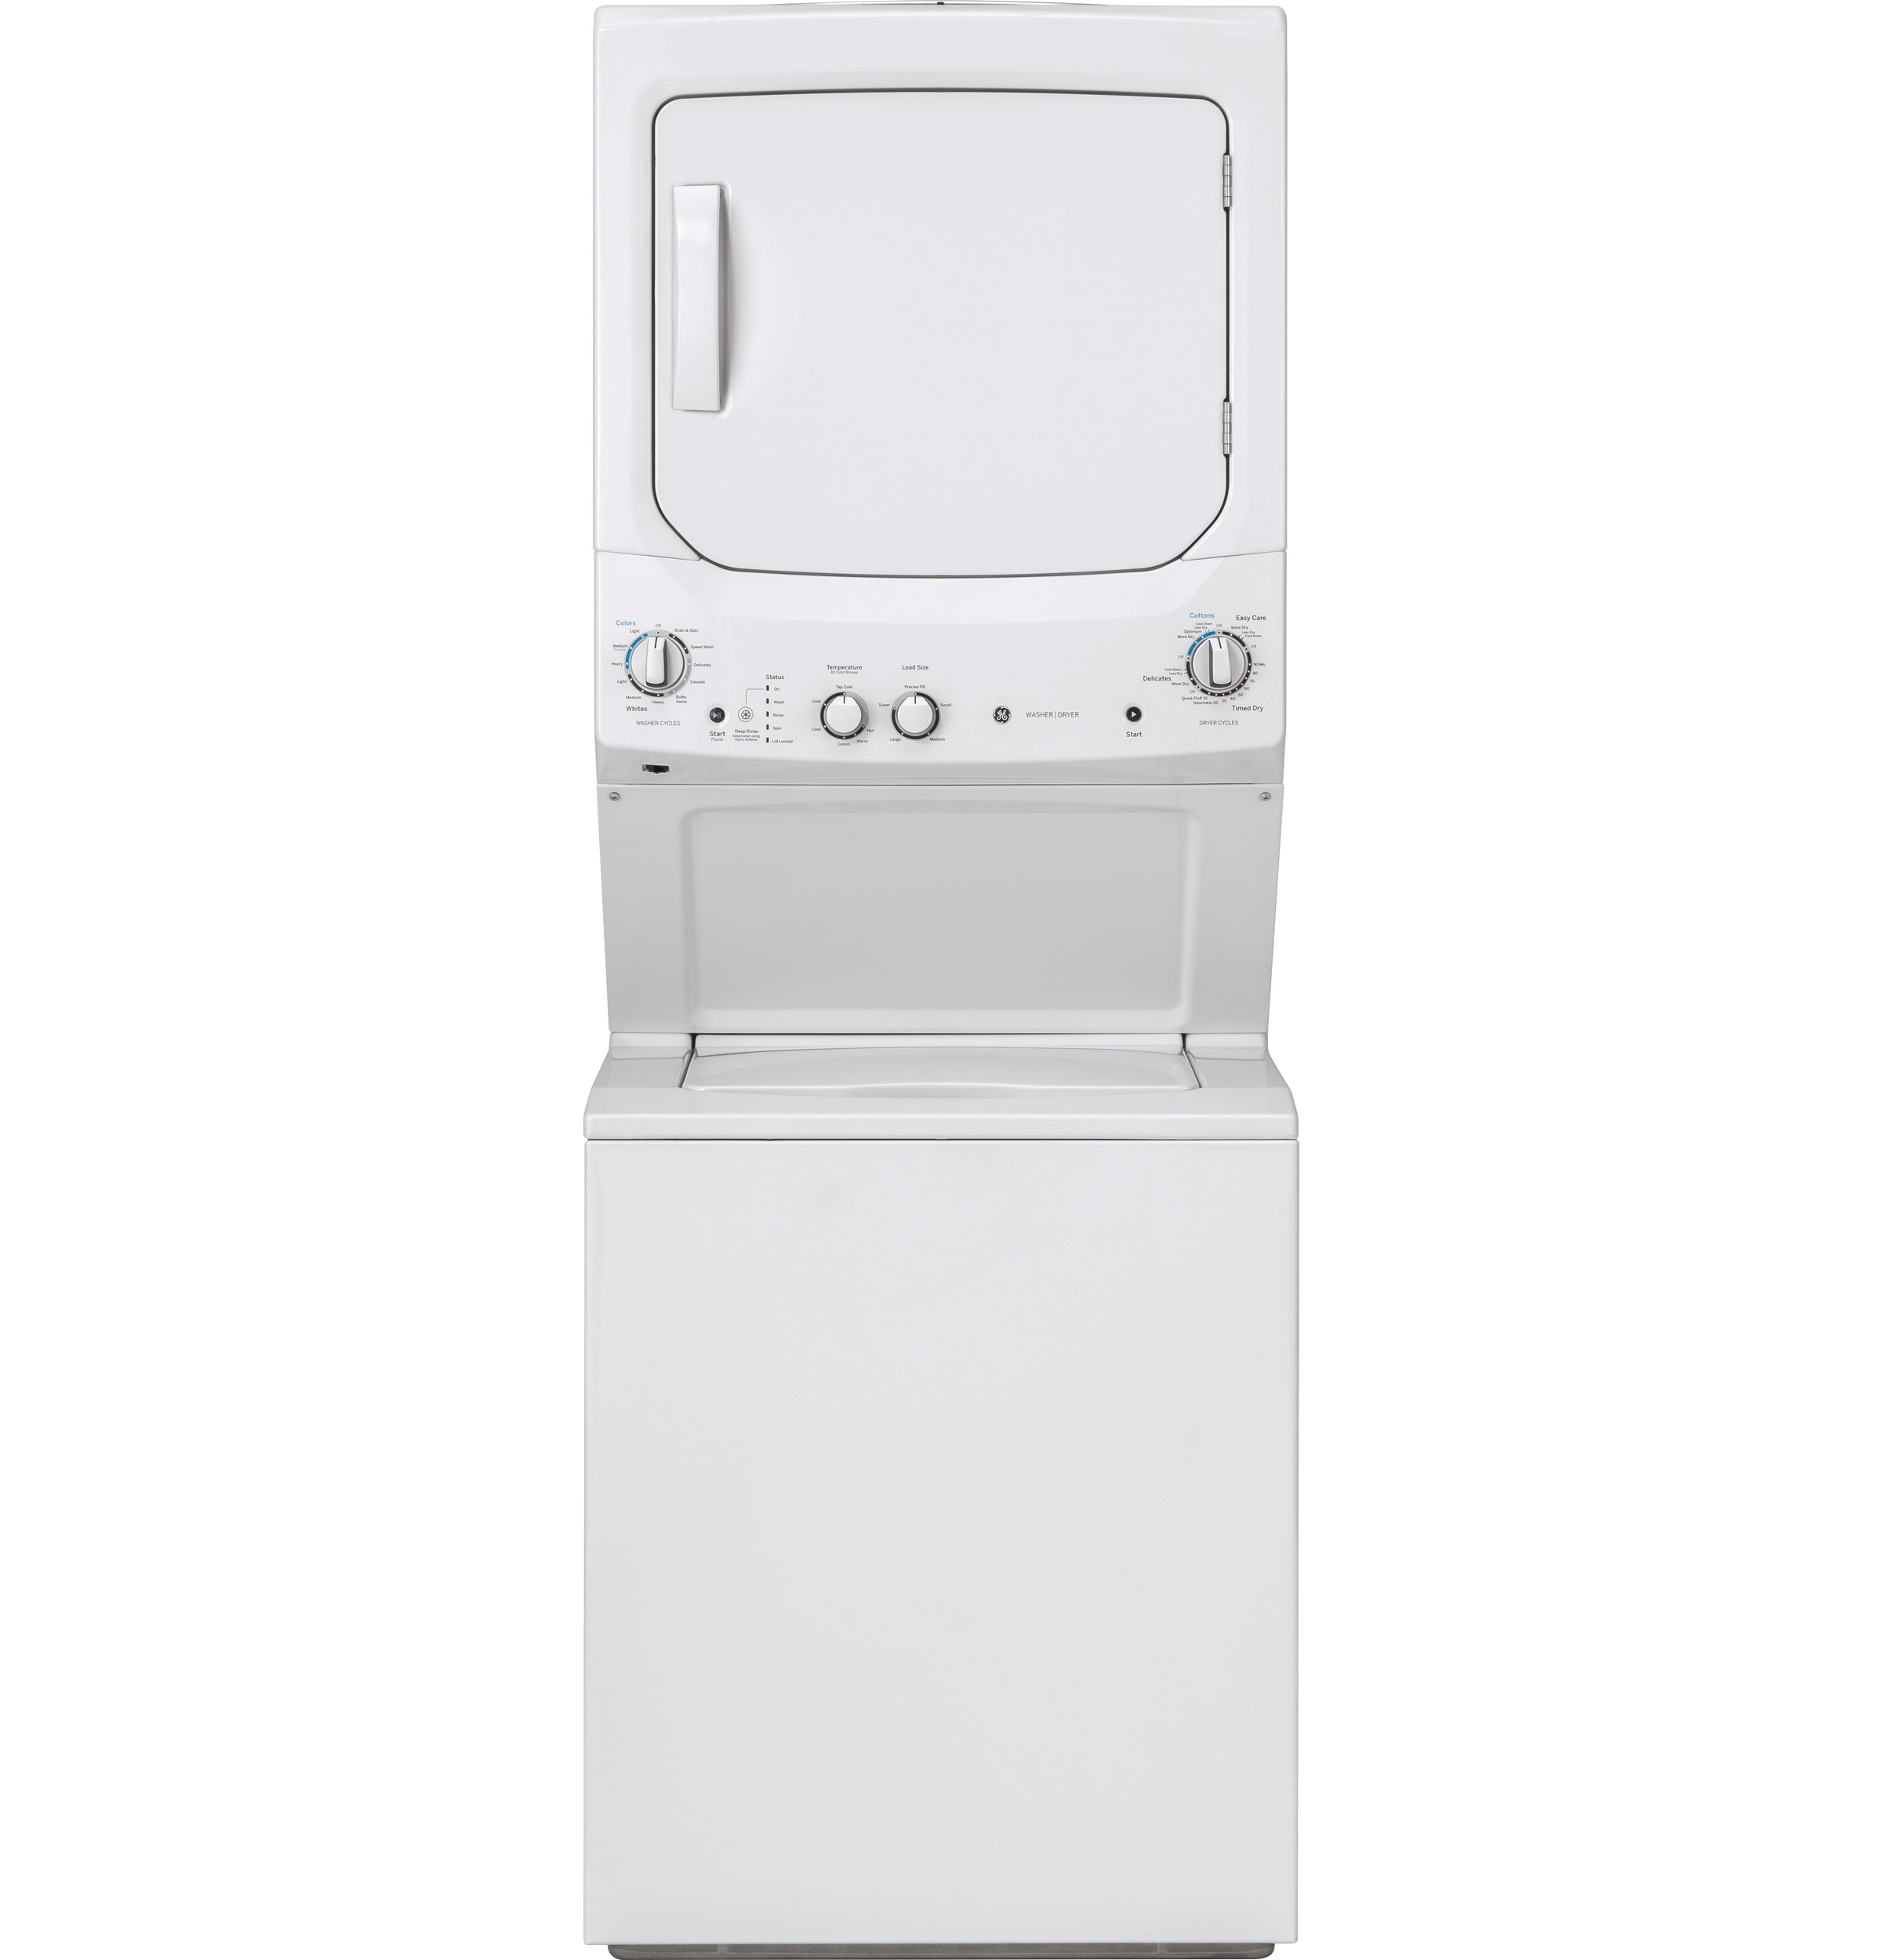 GE GE Unitized Spacemaker® 3.8 cu. ft. Capacity Washer with Stainless Steel Basket and 5.9 cu. ft. Capacity Electric Dryer